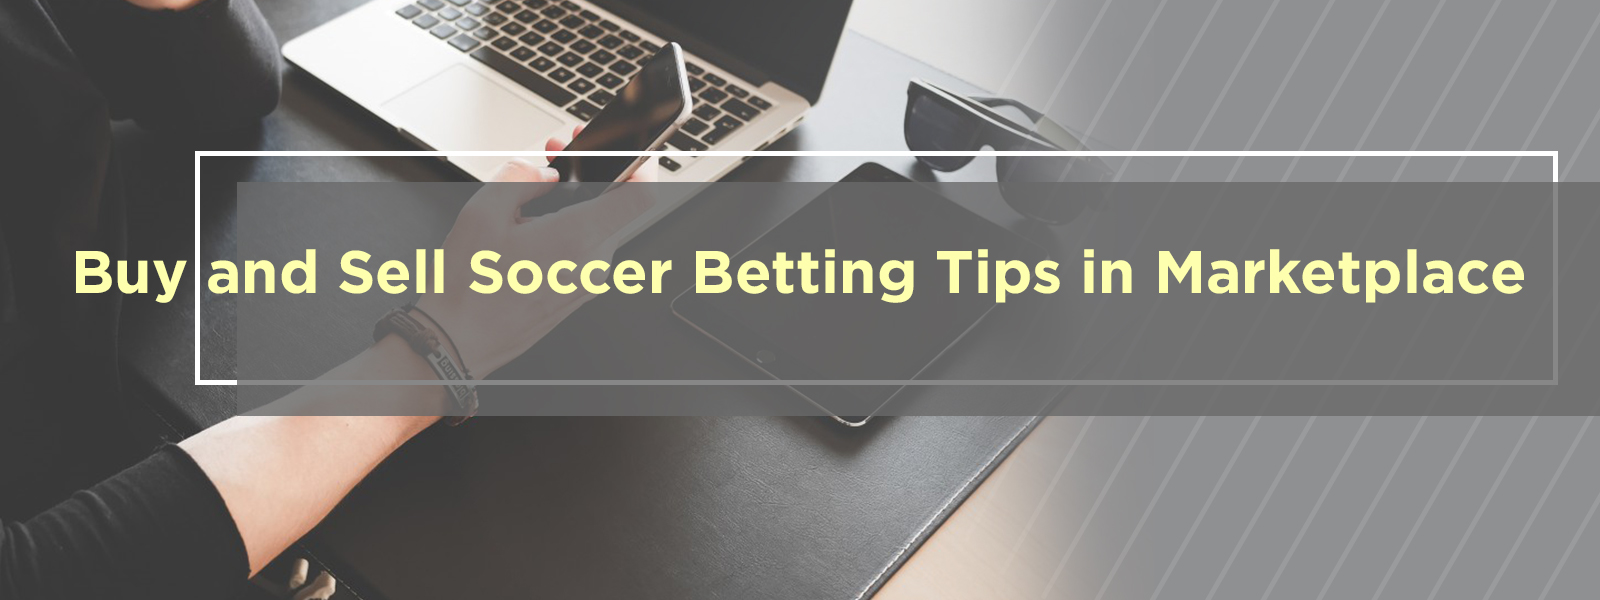 Buy and Sell Soccer Betting Tips in Marketplace Blog Featured Image